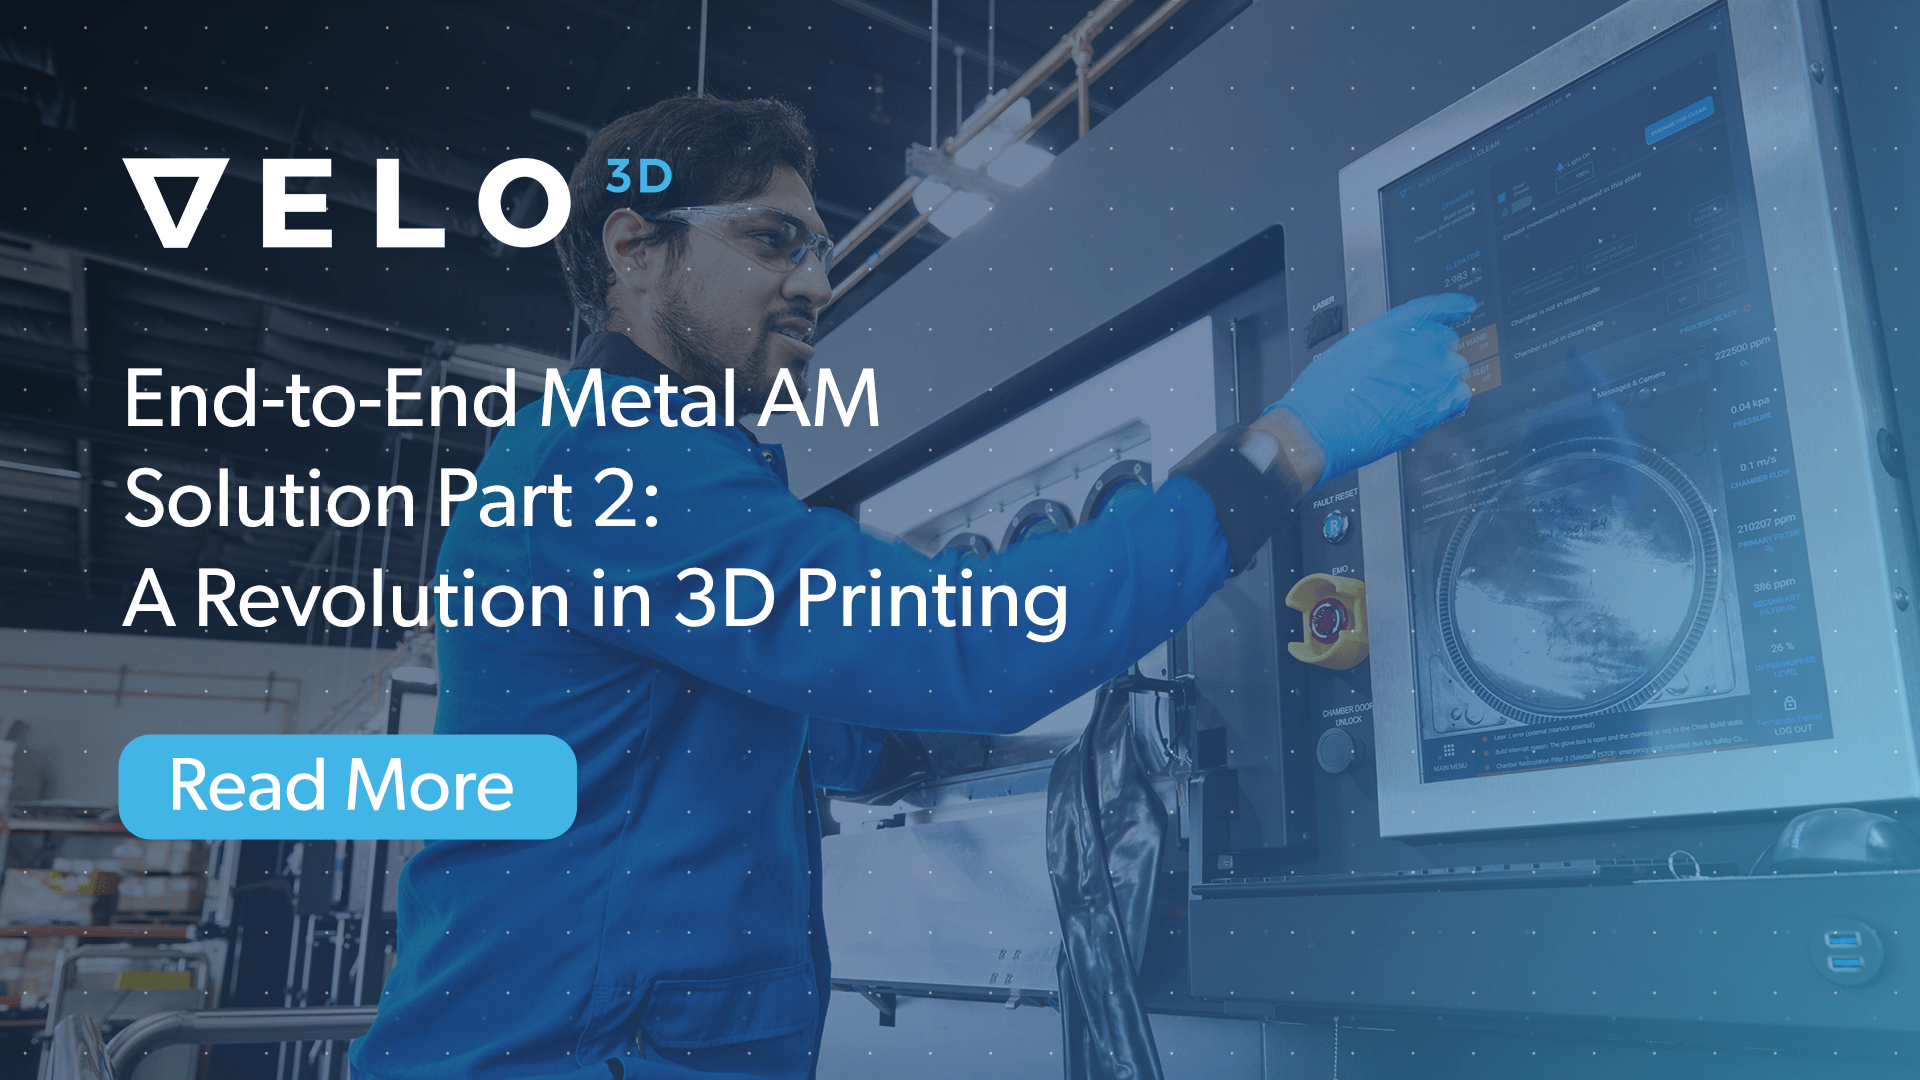 The Velo3D End-to-End Metal AM Solution Part 2: A Revolution in 3D Printing